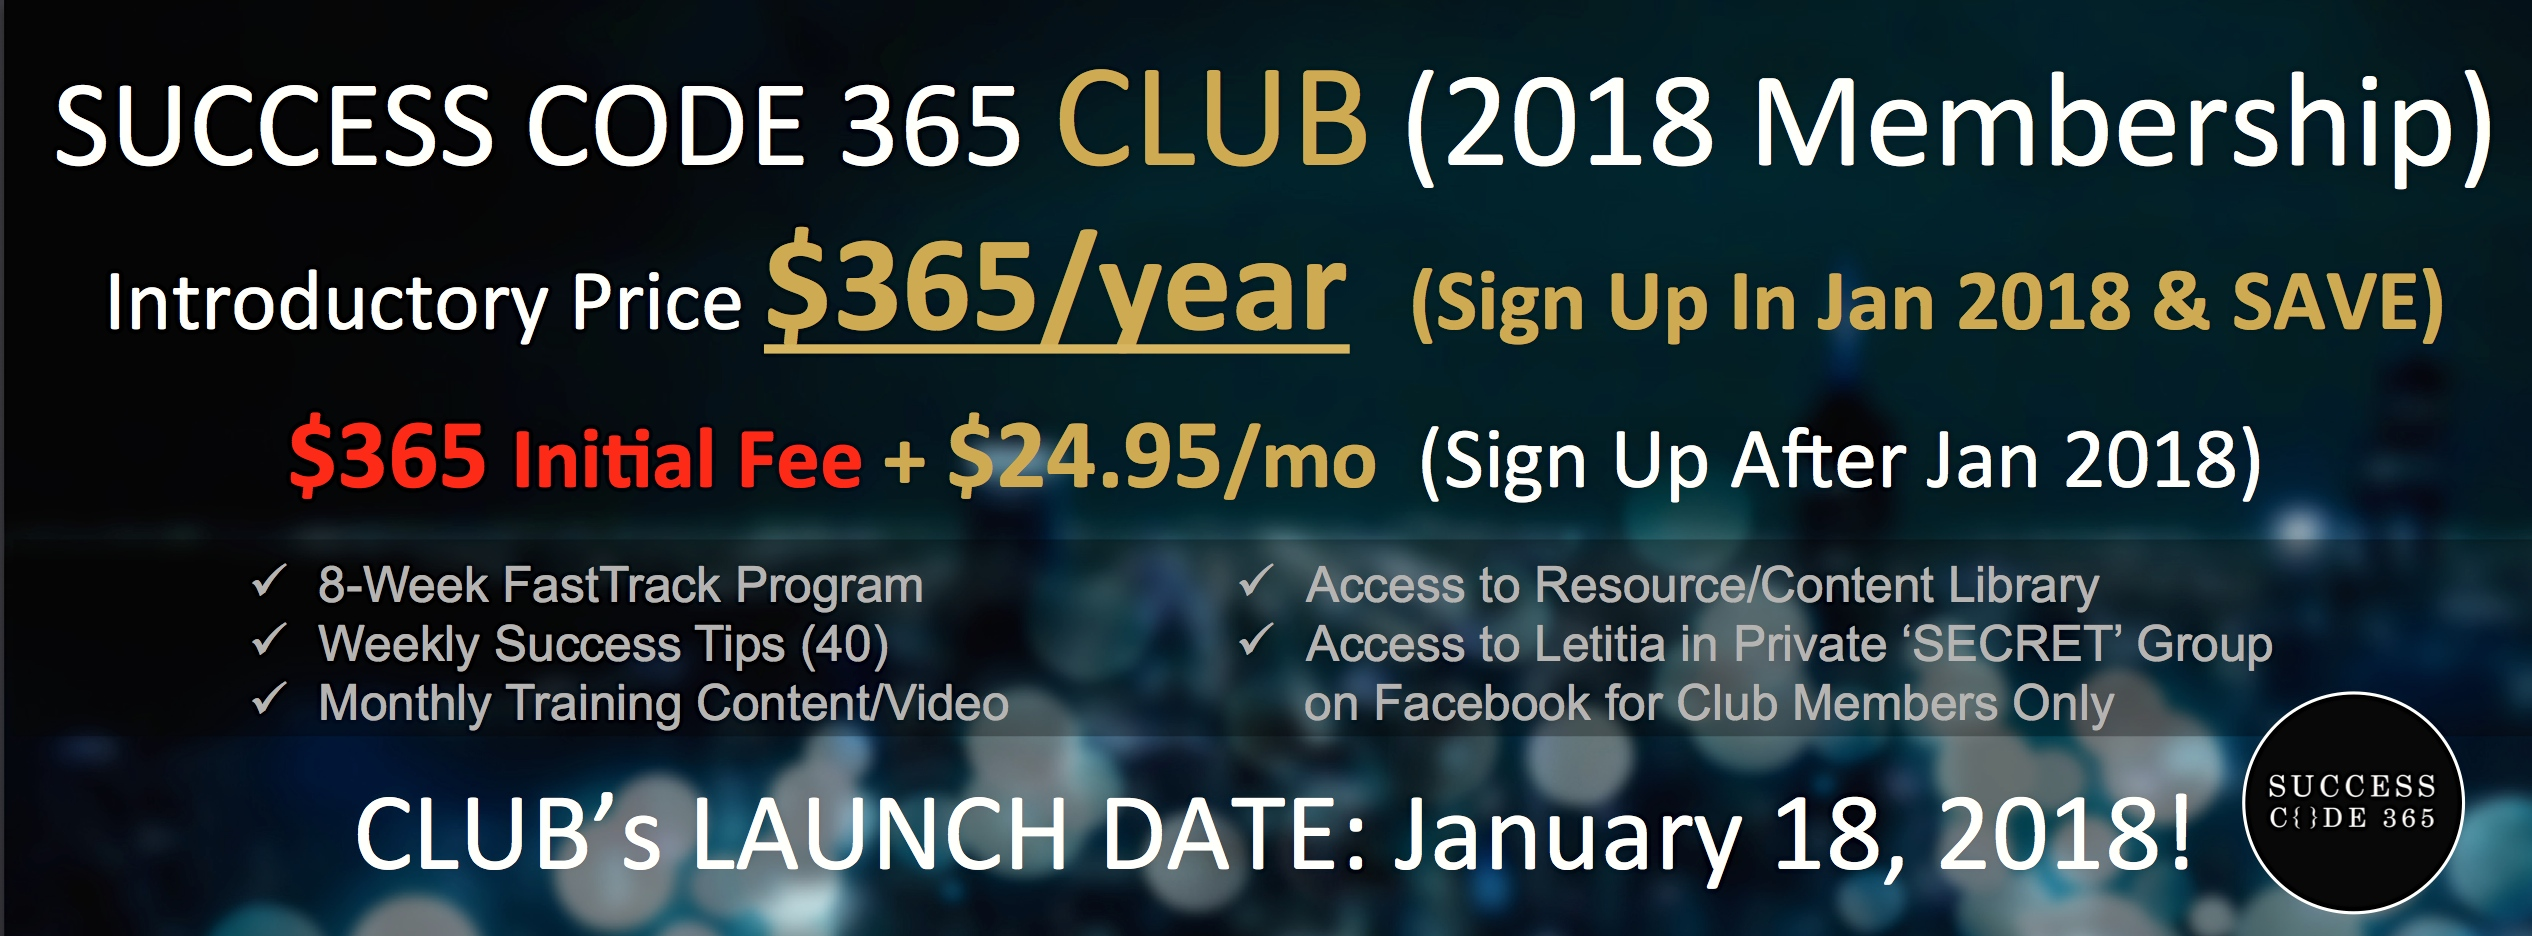 Success Code 365 CLUB